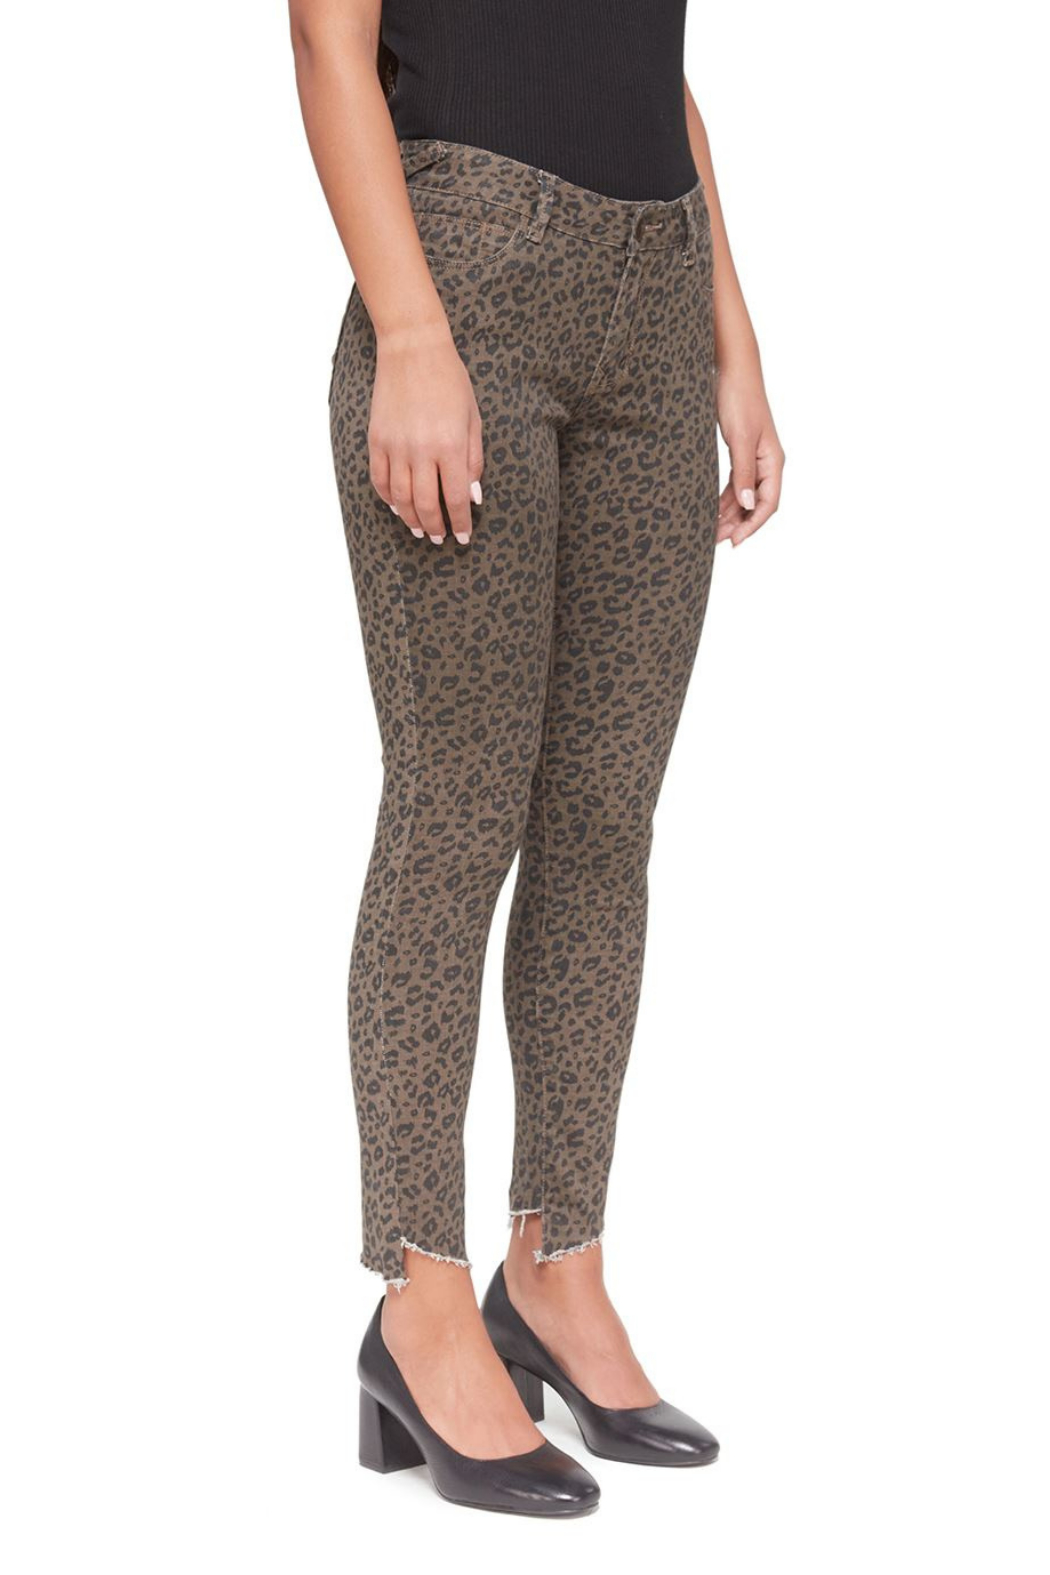 Lola Jeans Blair Leopard Mid-Rise Skinny Jean - Front Full Image